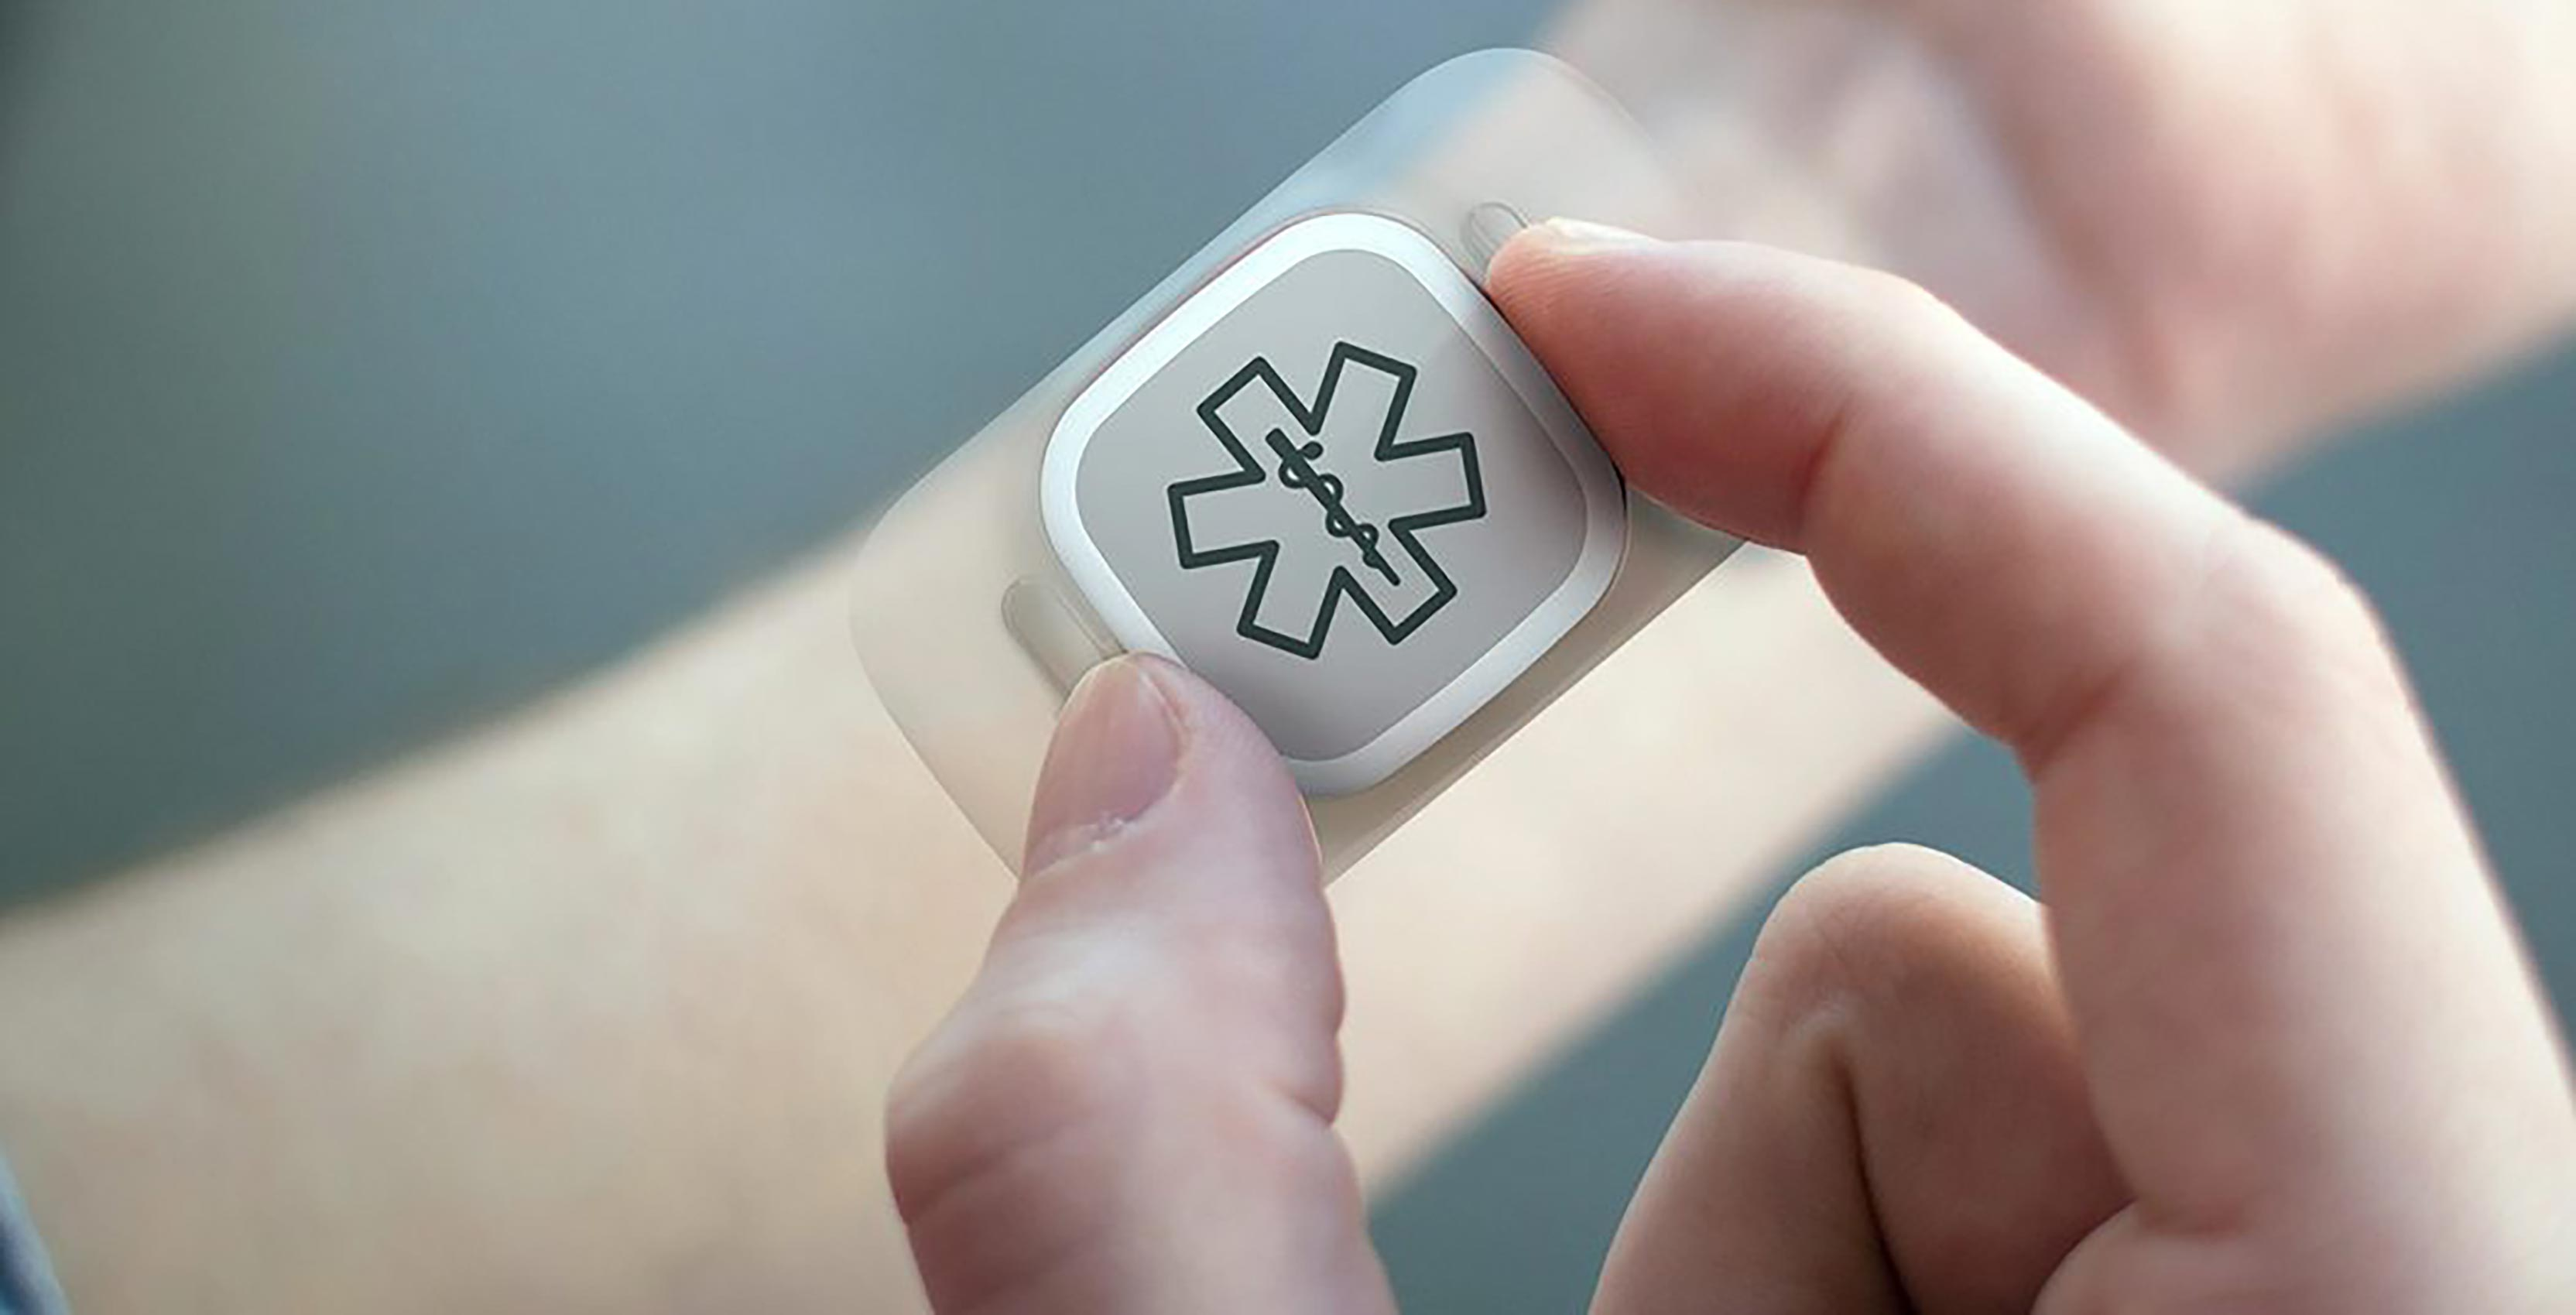 Wearable in hand with medical symbol